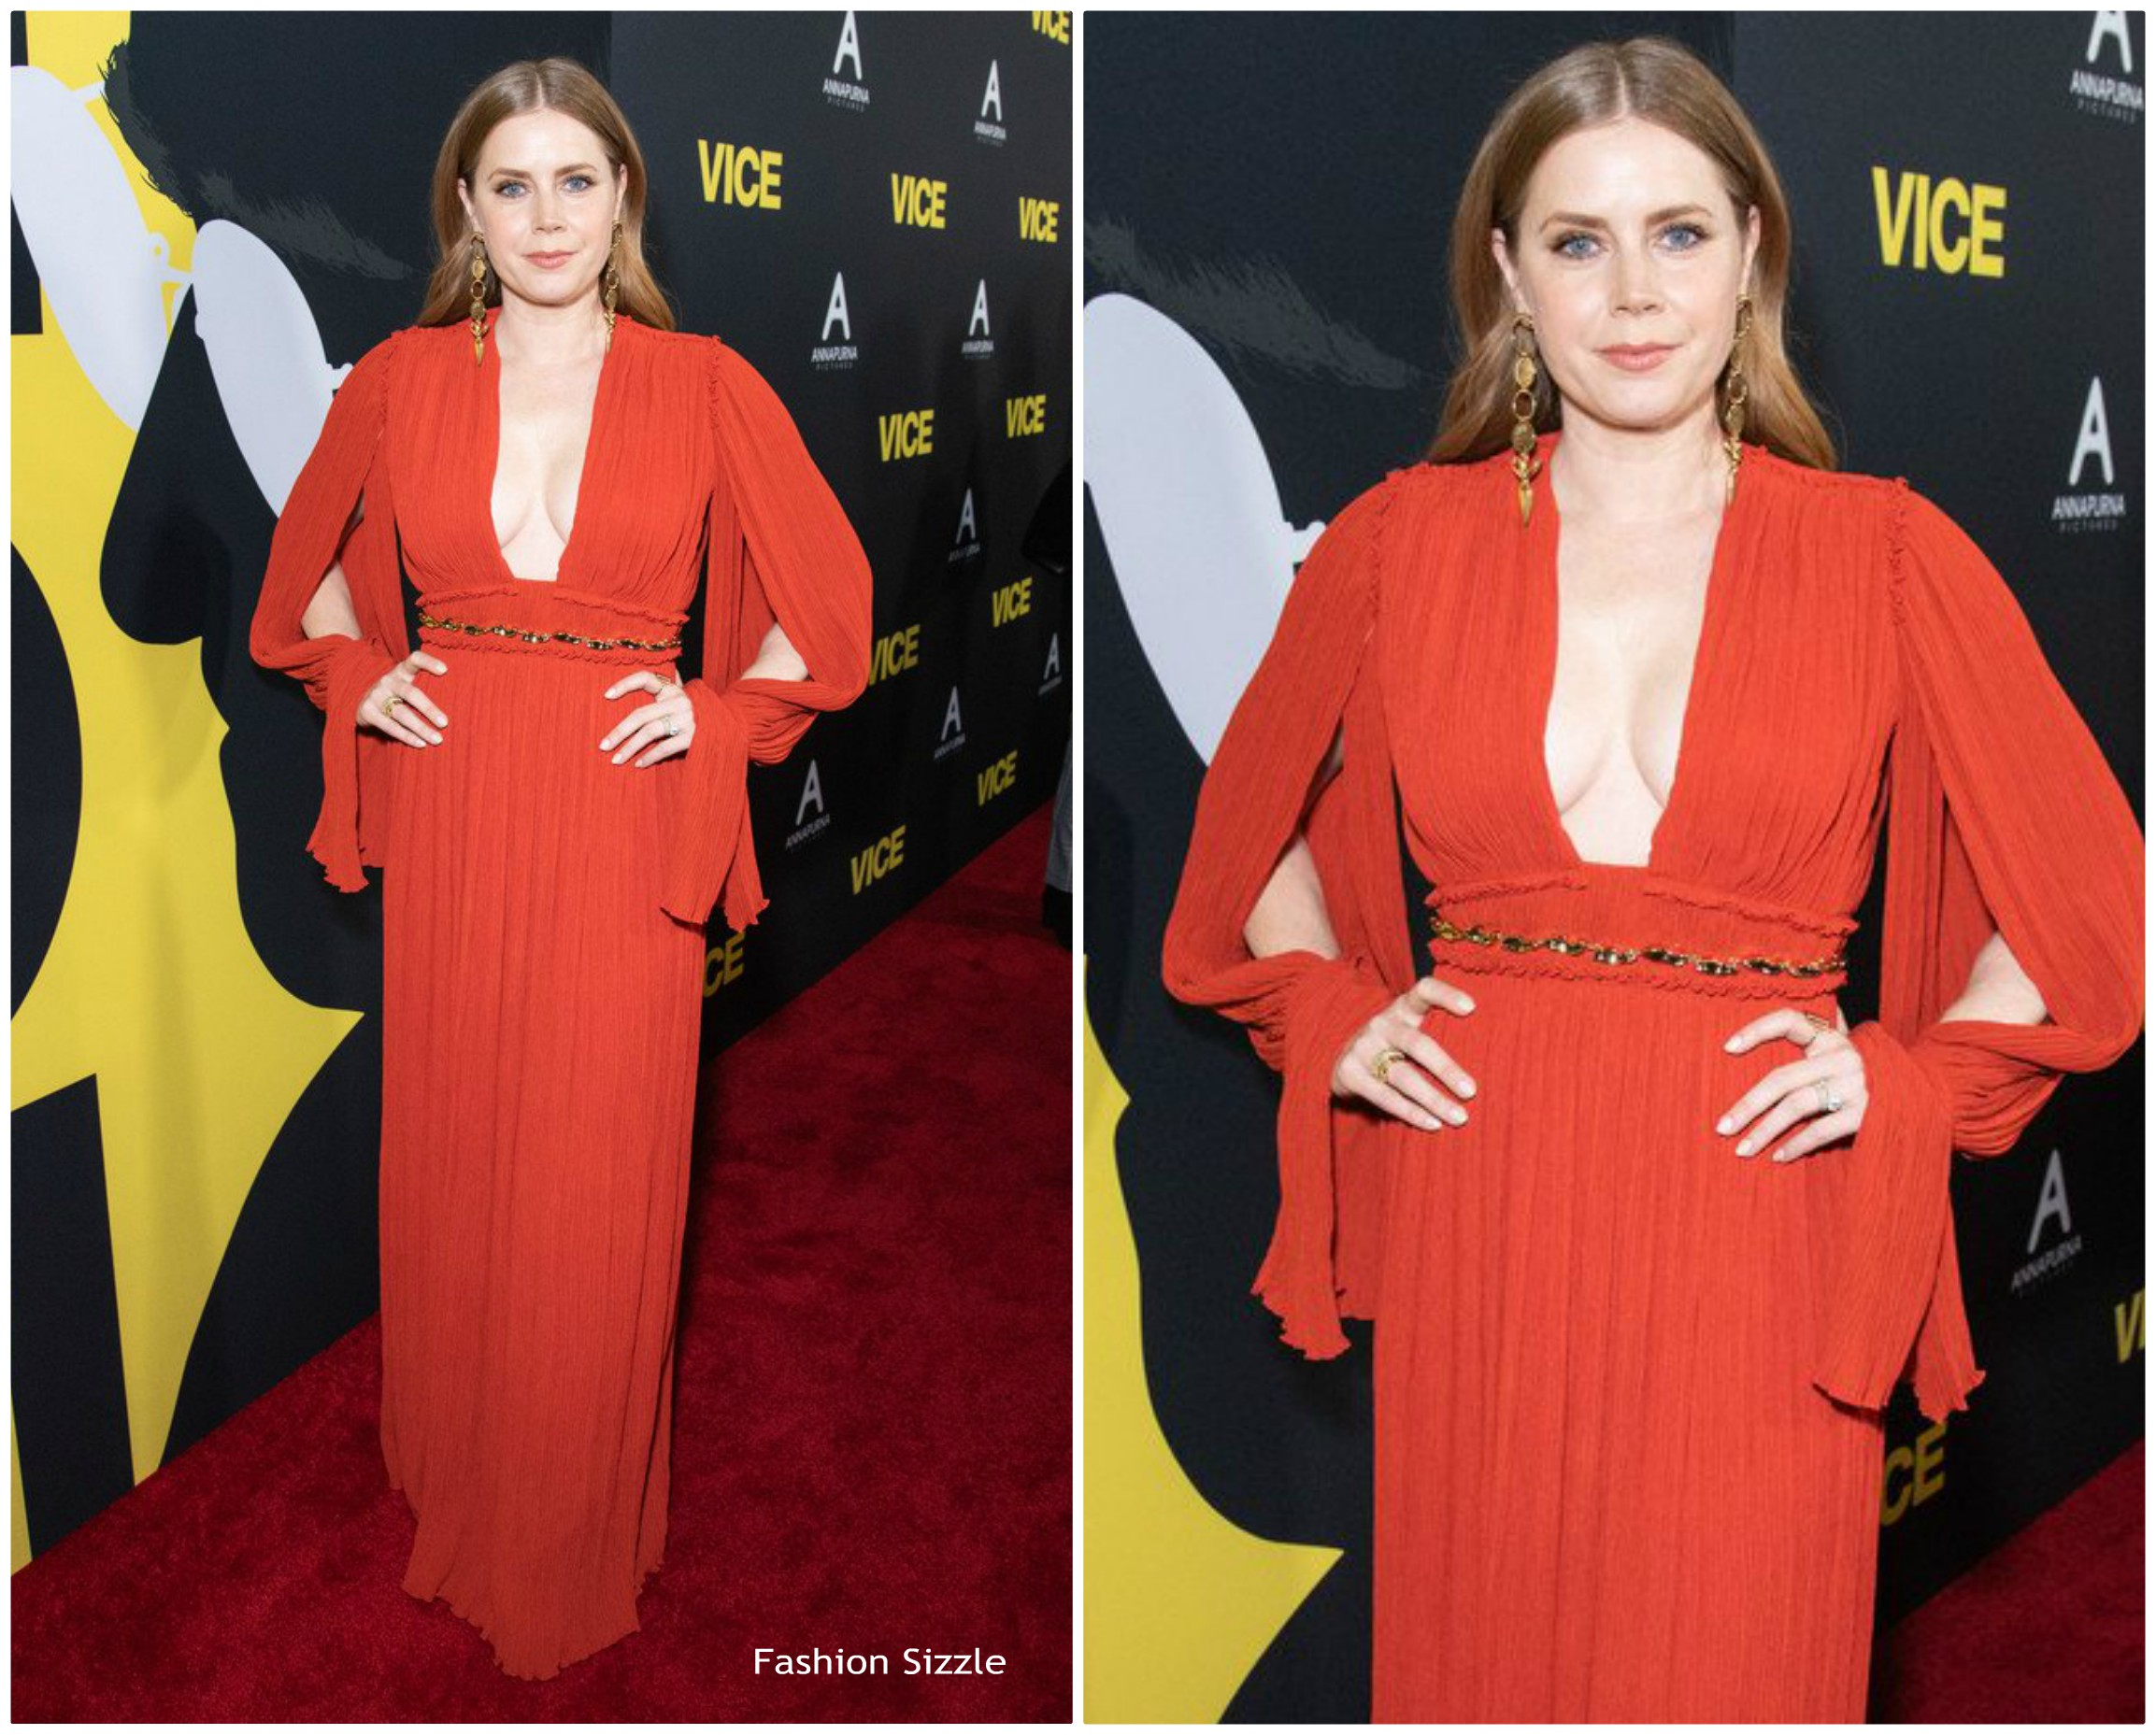 amy-adams-in-chloe-vice-la-premiere